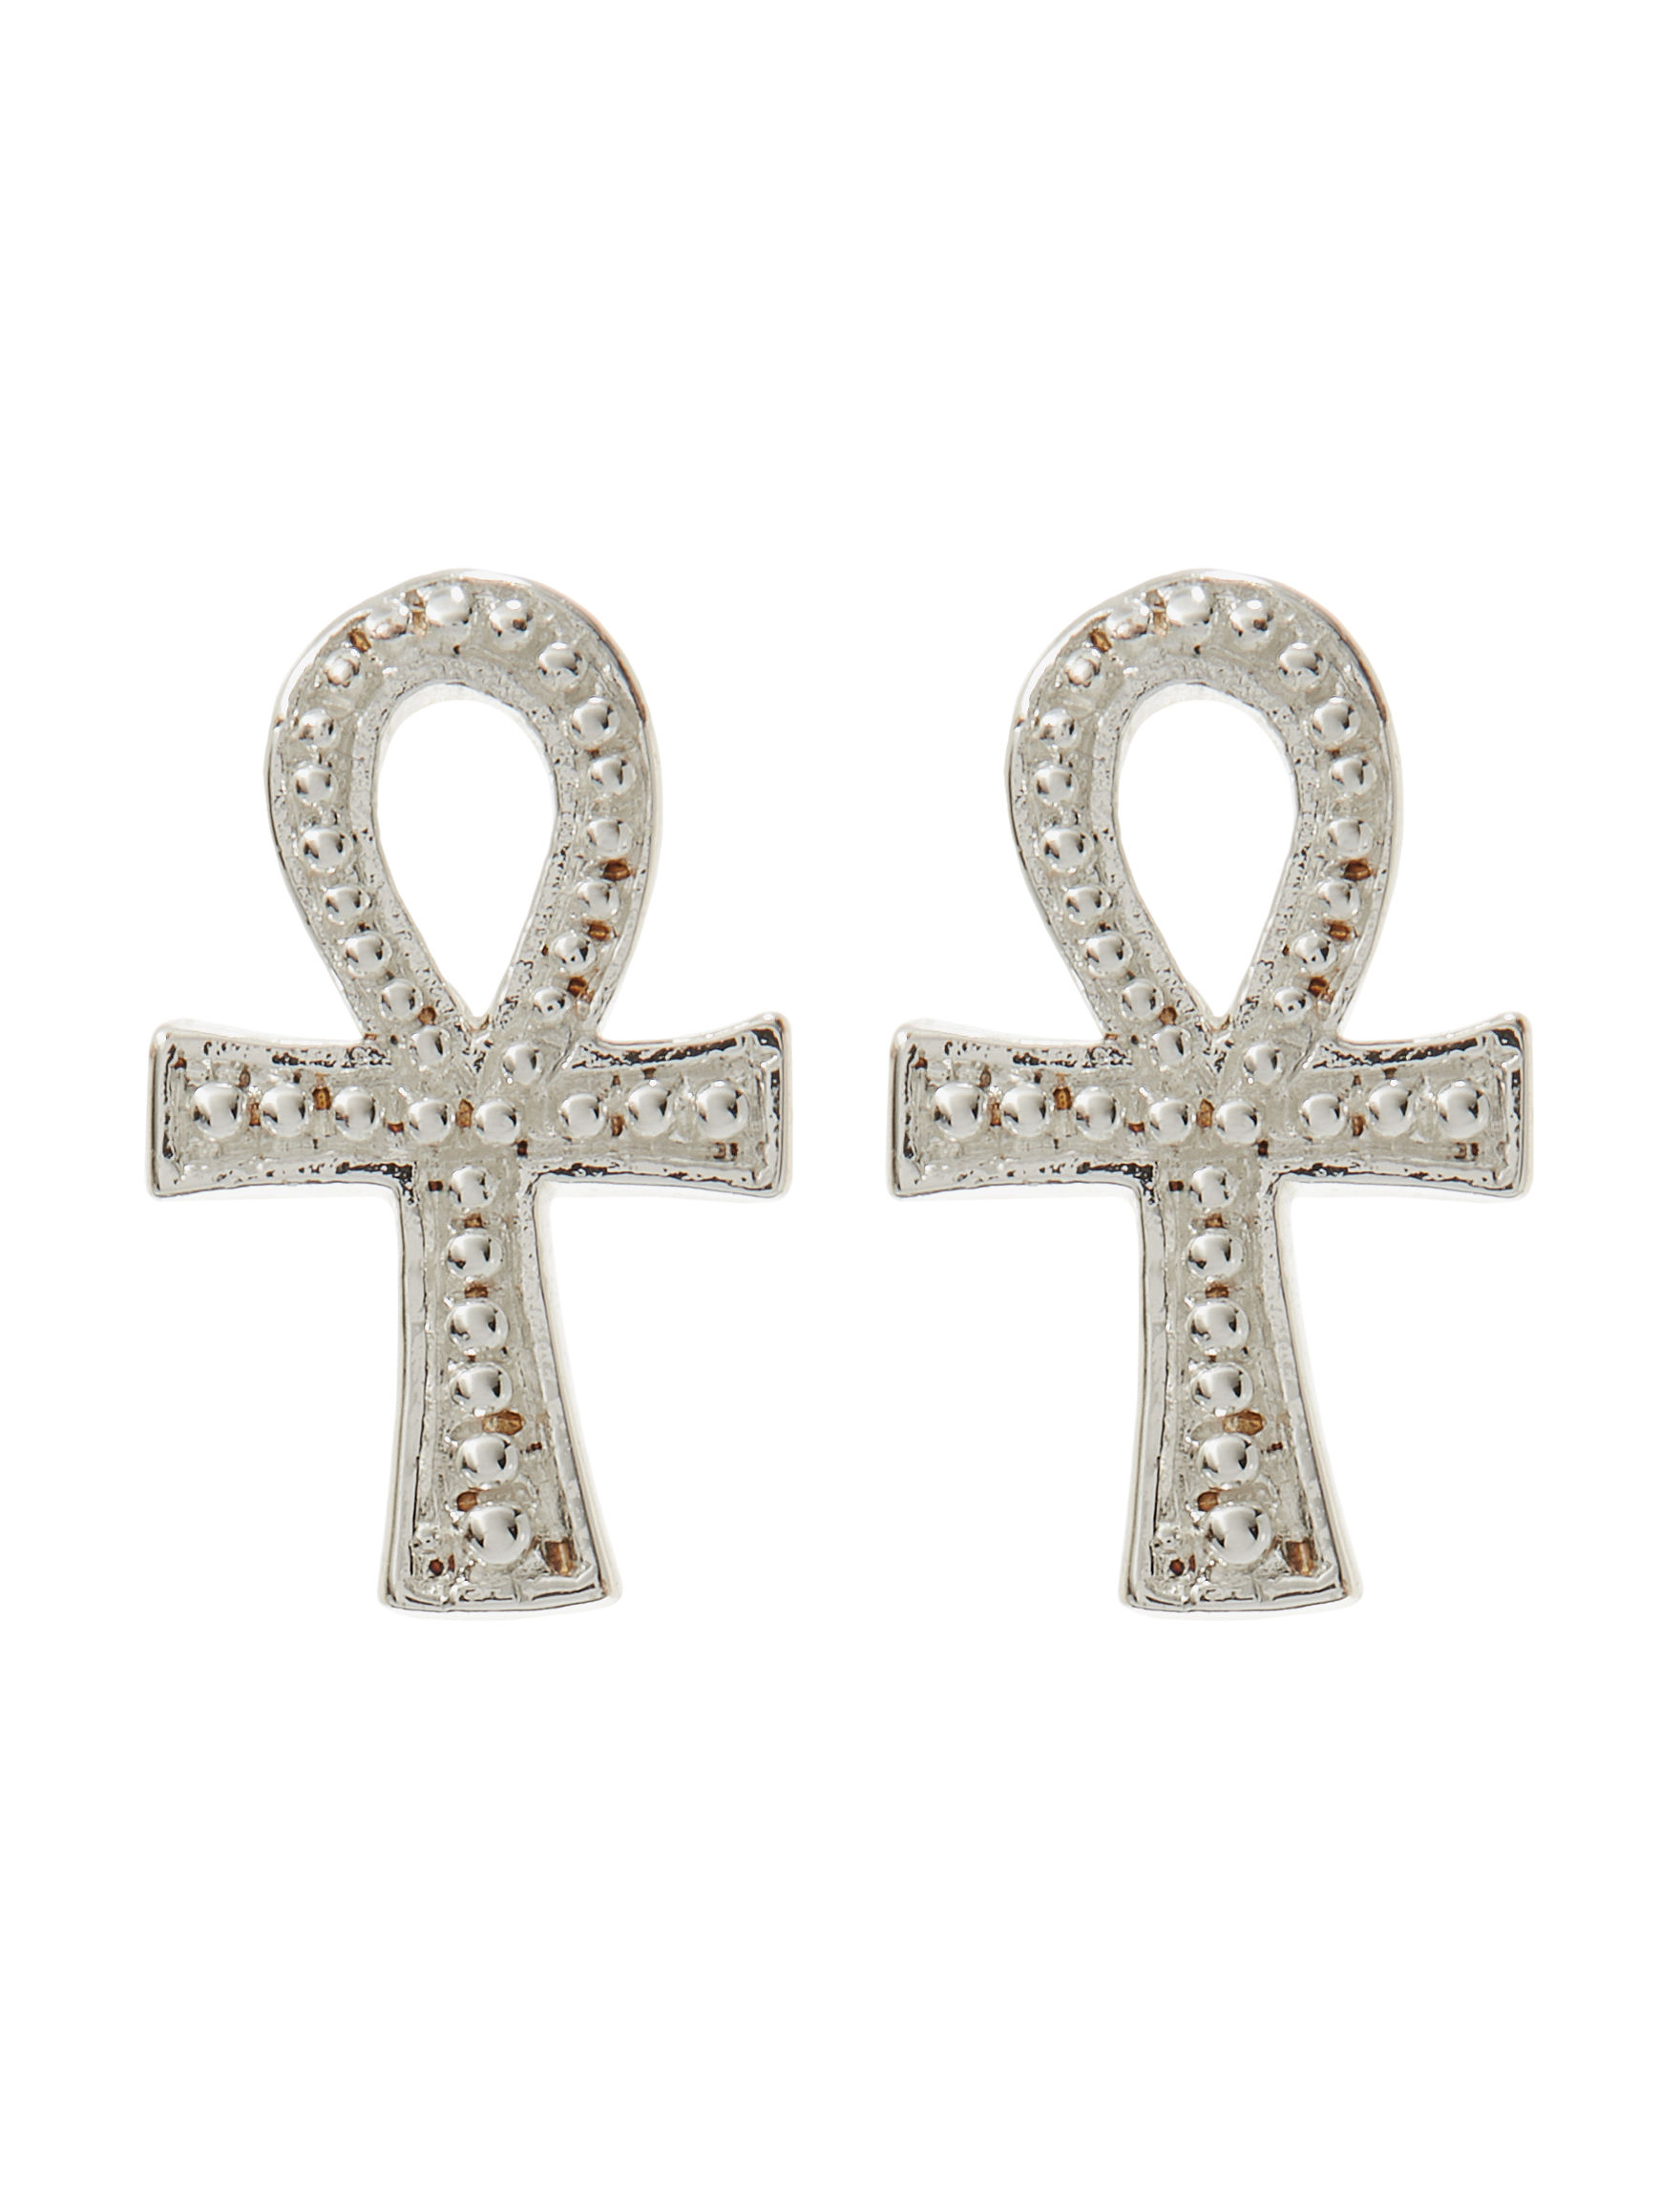 Danecraft Silver Studs Earrings Fine Jewelry